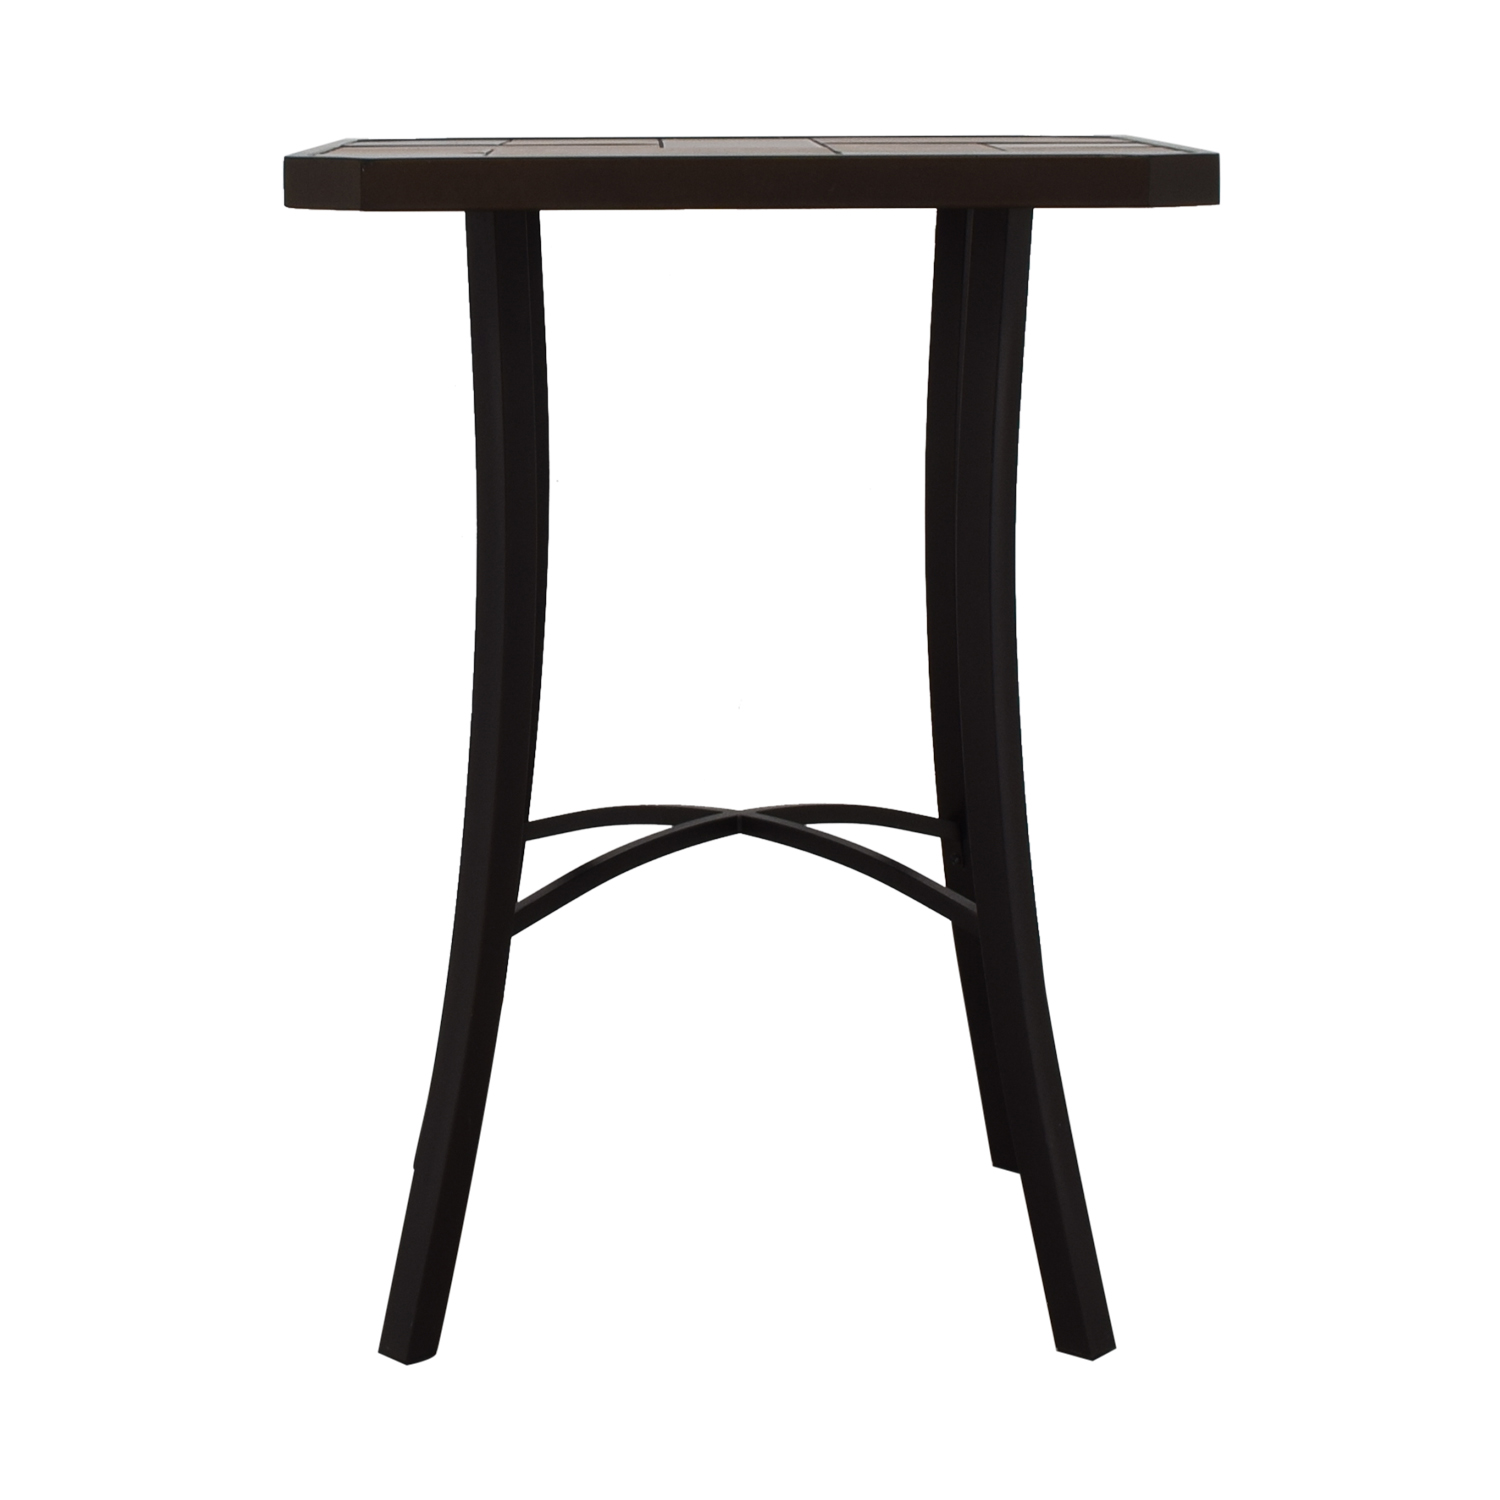 High-Top Ceramic Tile Table price